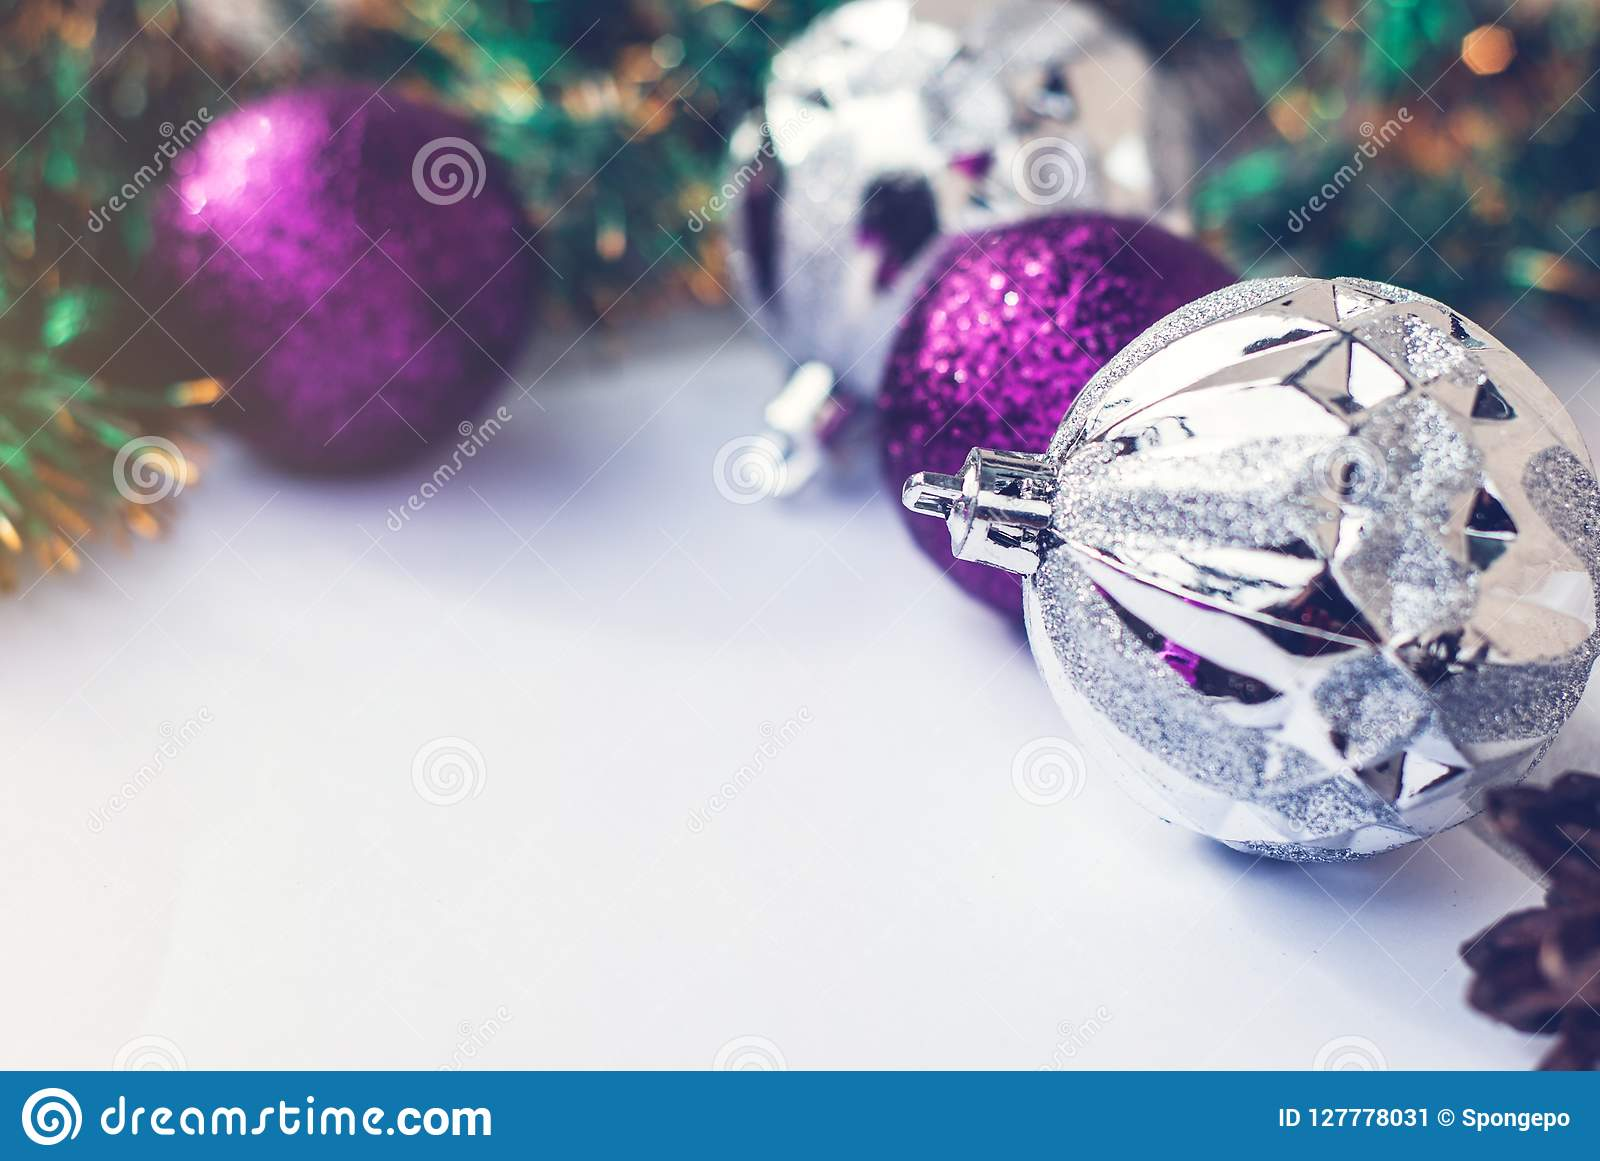 christmas tree purple and silver decorations balls on white retro wood background